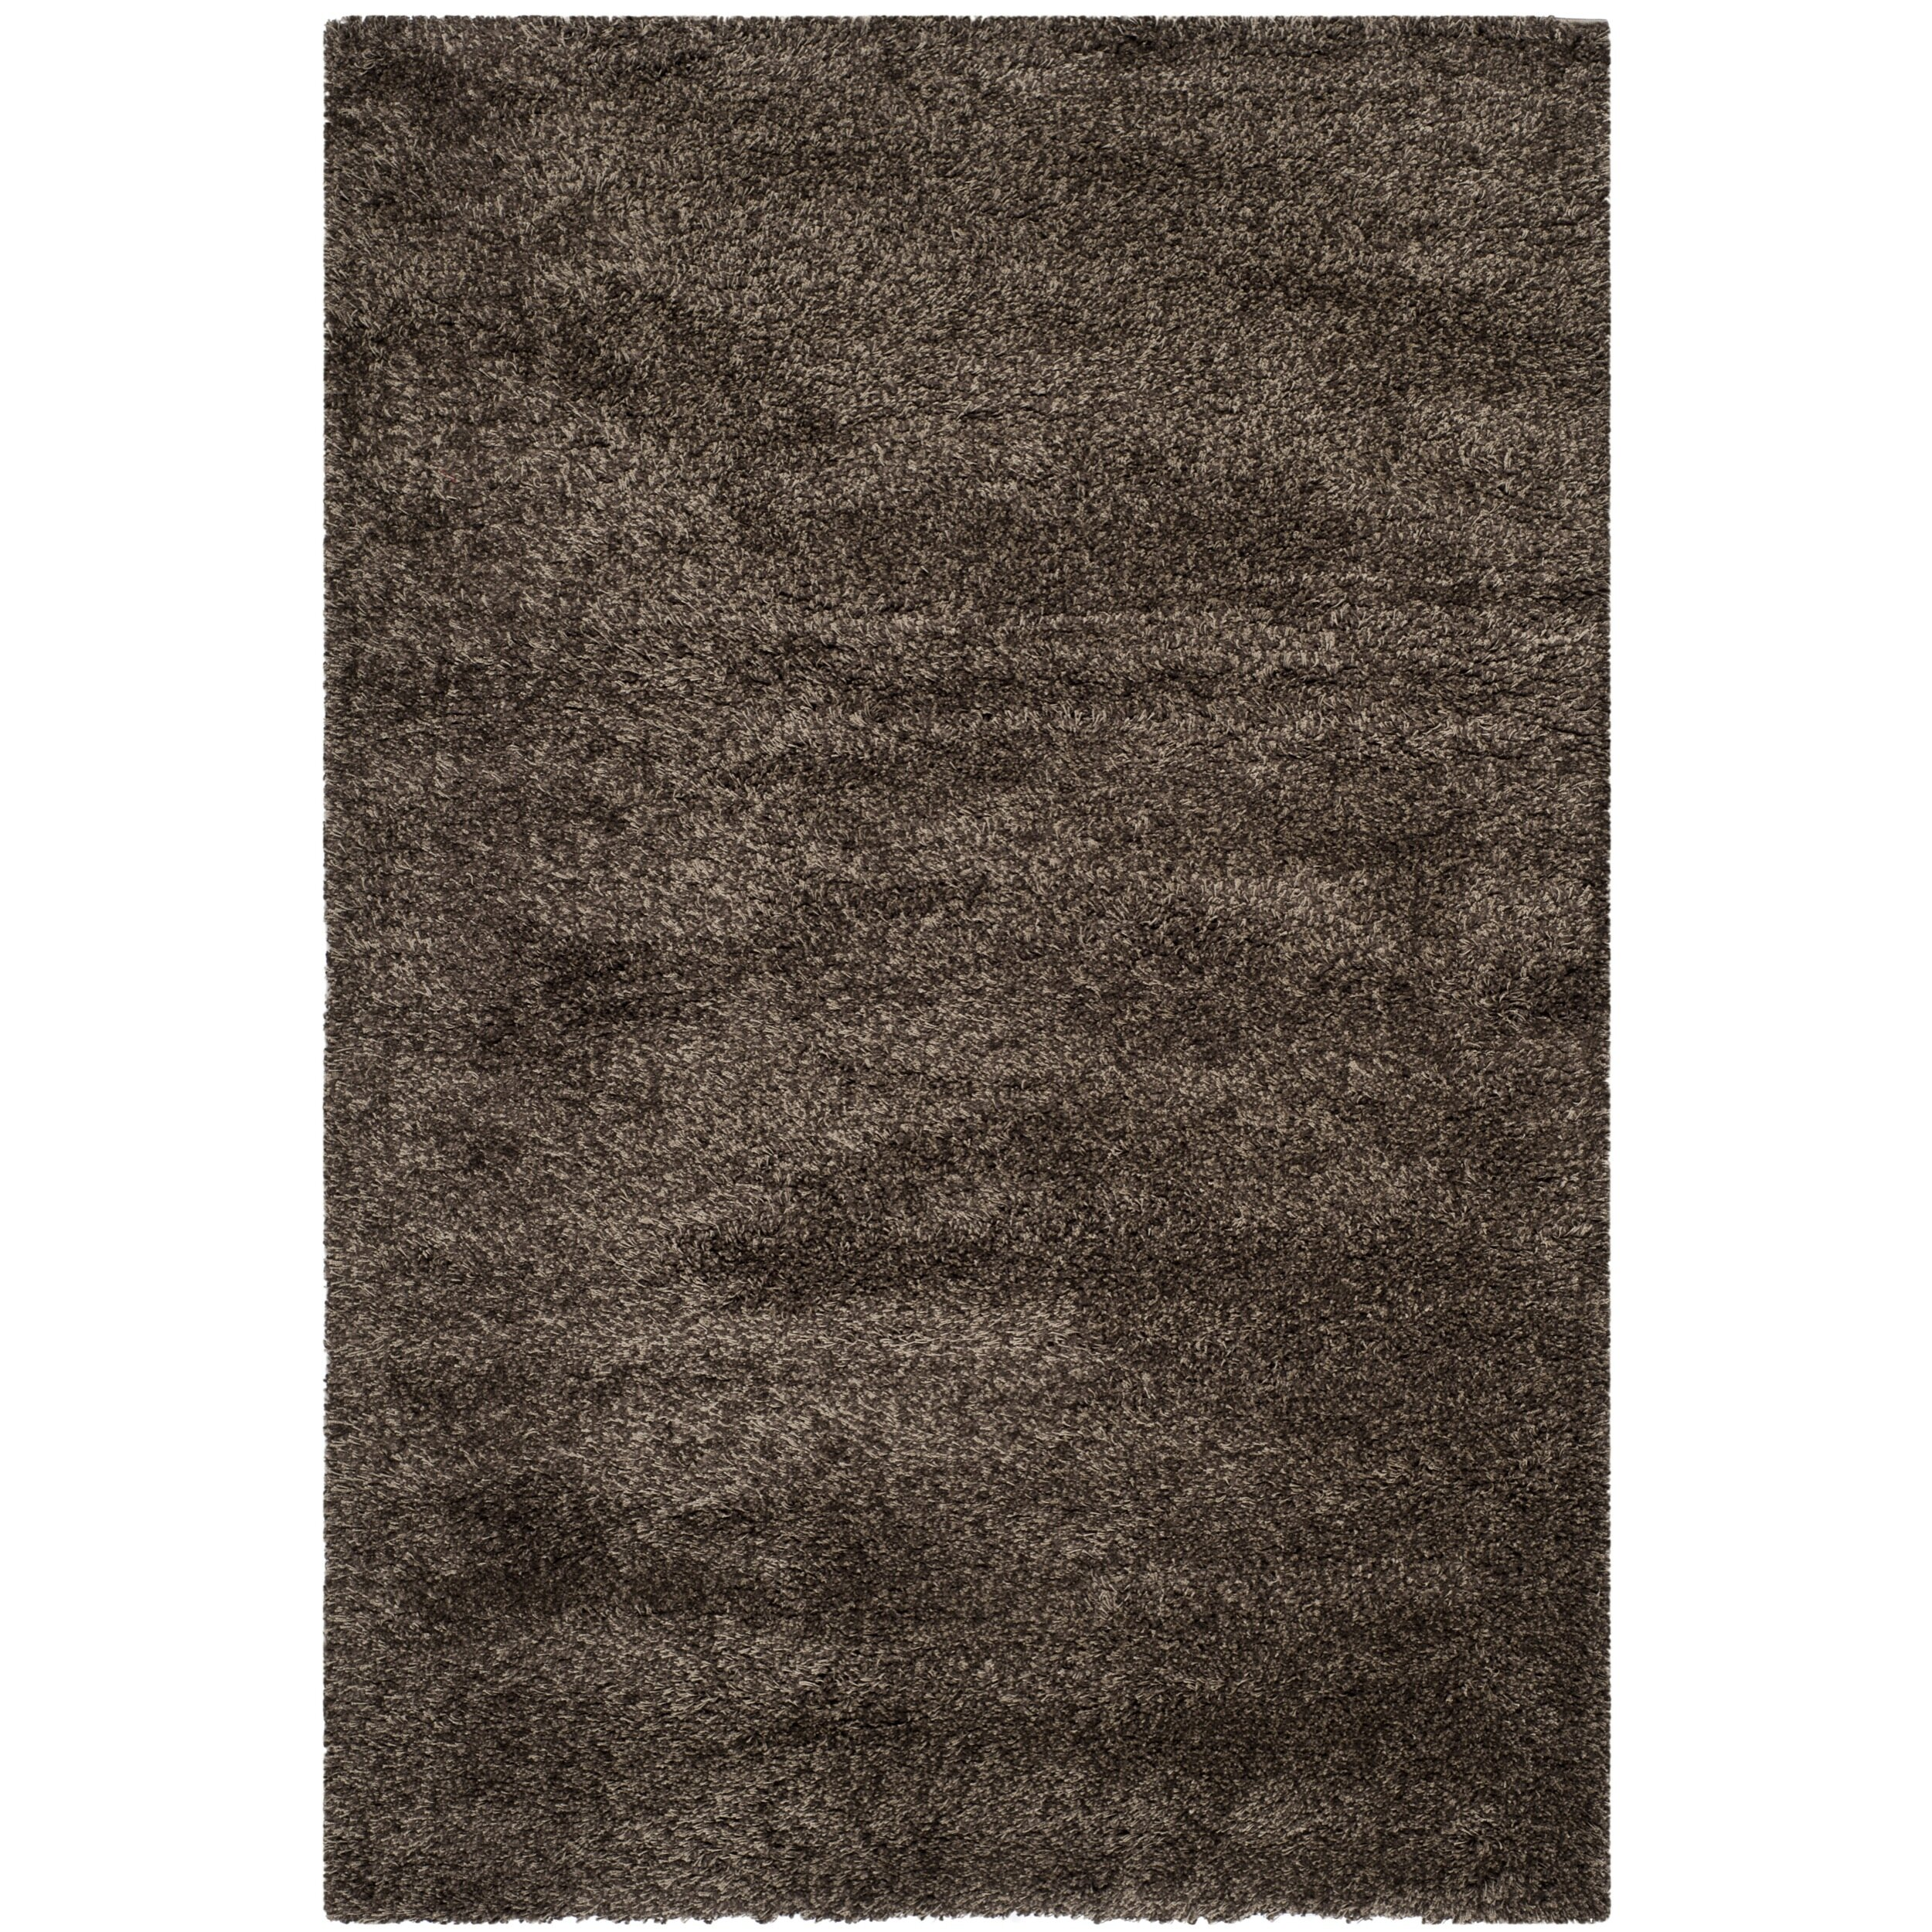 safavieh shag mushroom area rug reviews wayfair